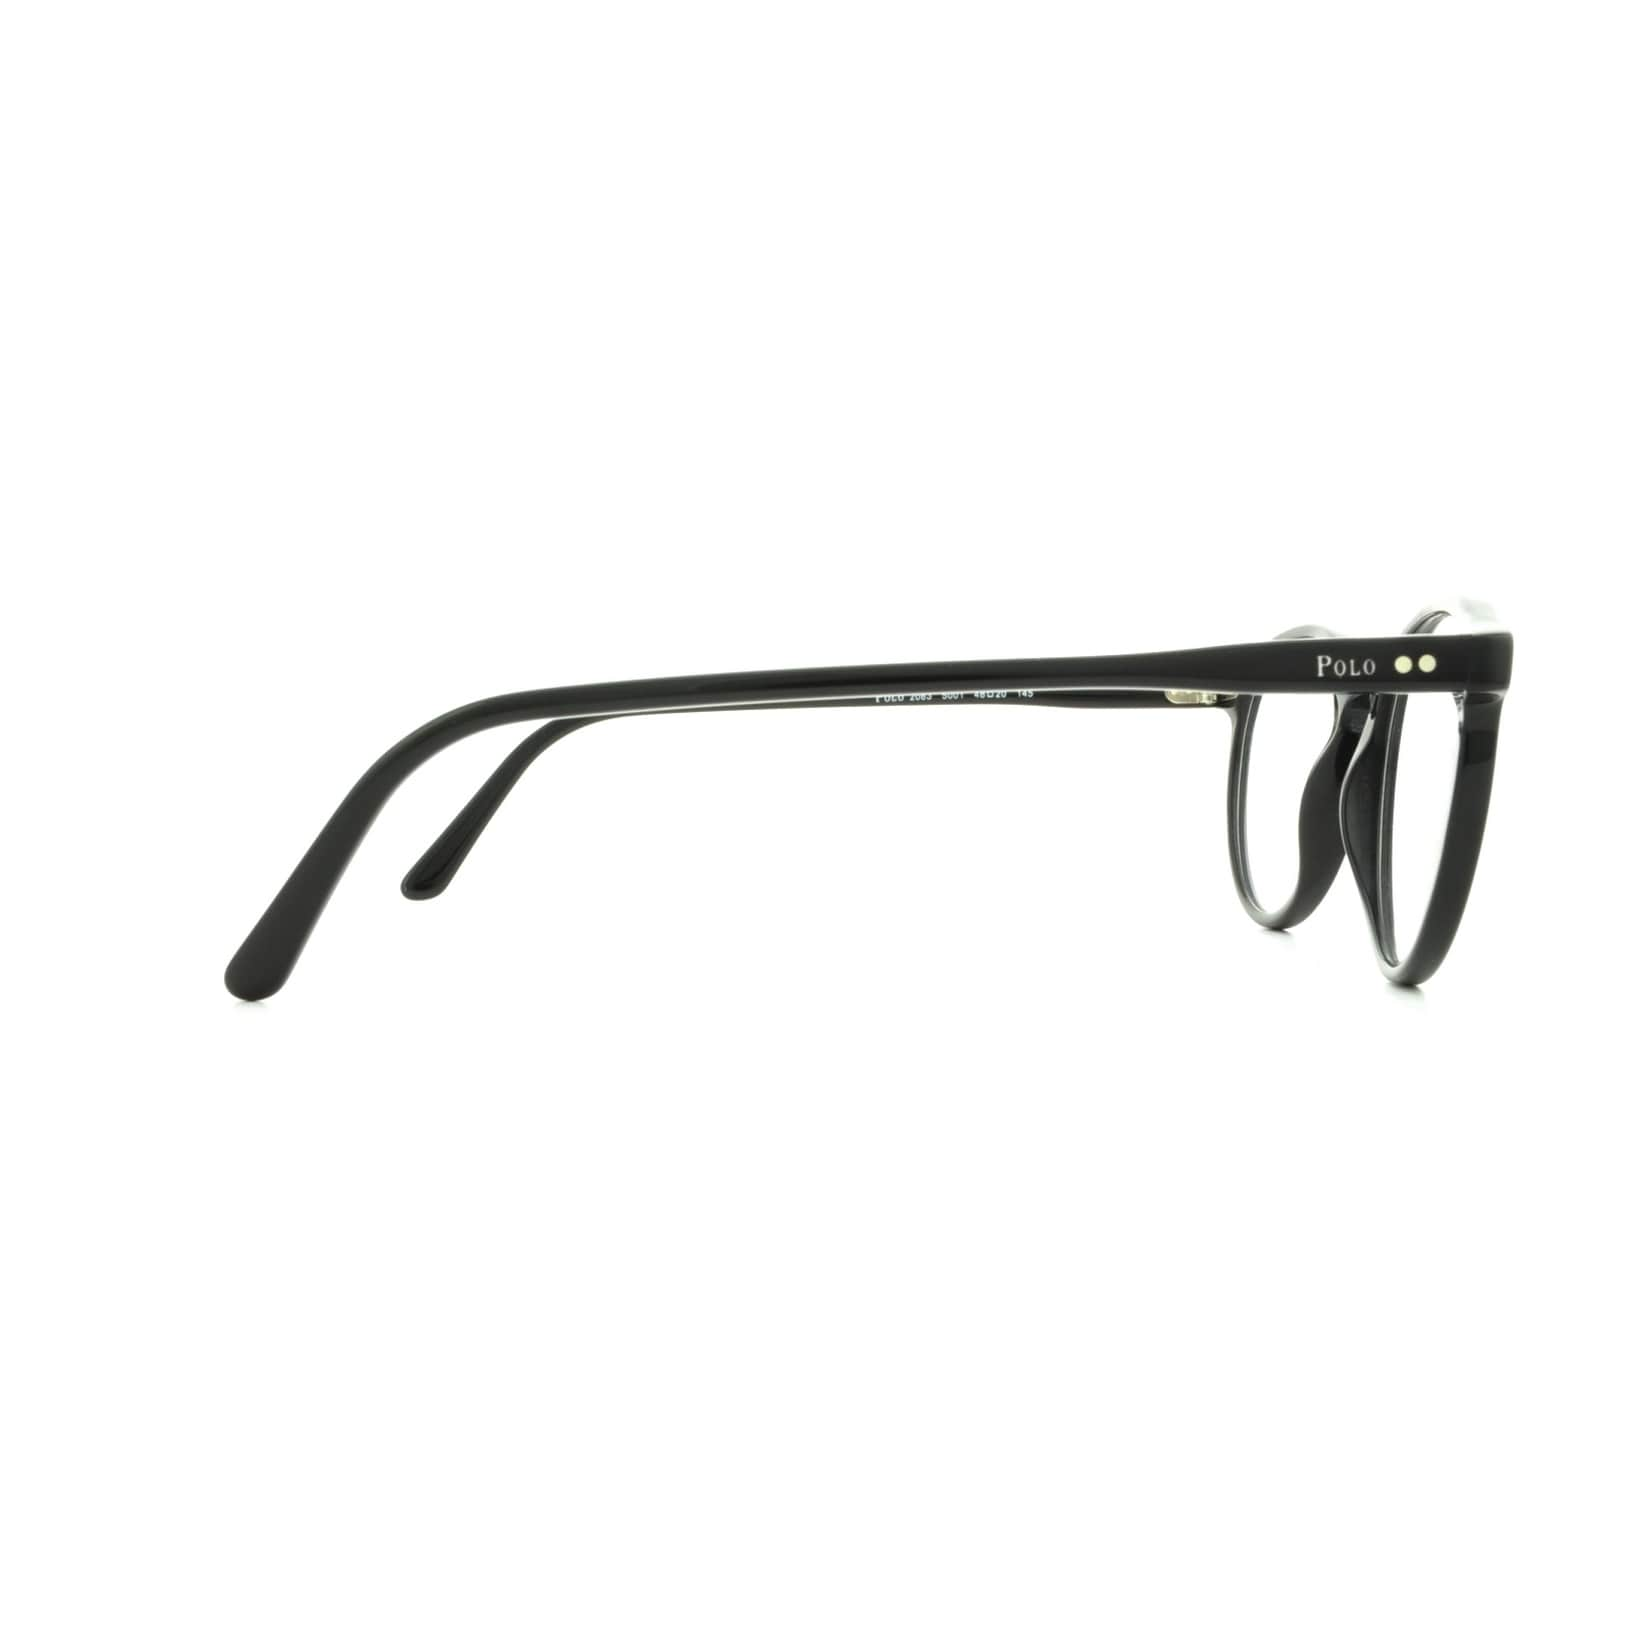 3034d95f7fc Shop Polo by Ralph by Ralph Lauren Lauren Men s PH2083 5001 46 Round  Plastic Black Clear Eyeglasses - Free Shipping Today - Overstock.com -  14786187